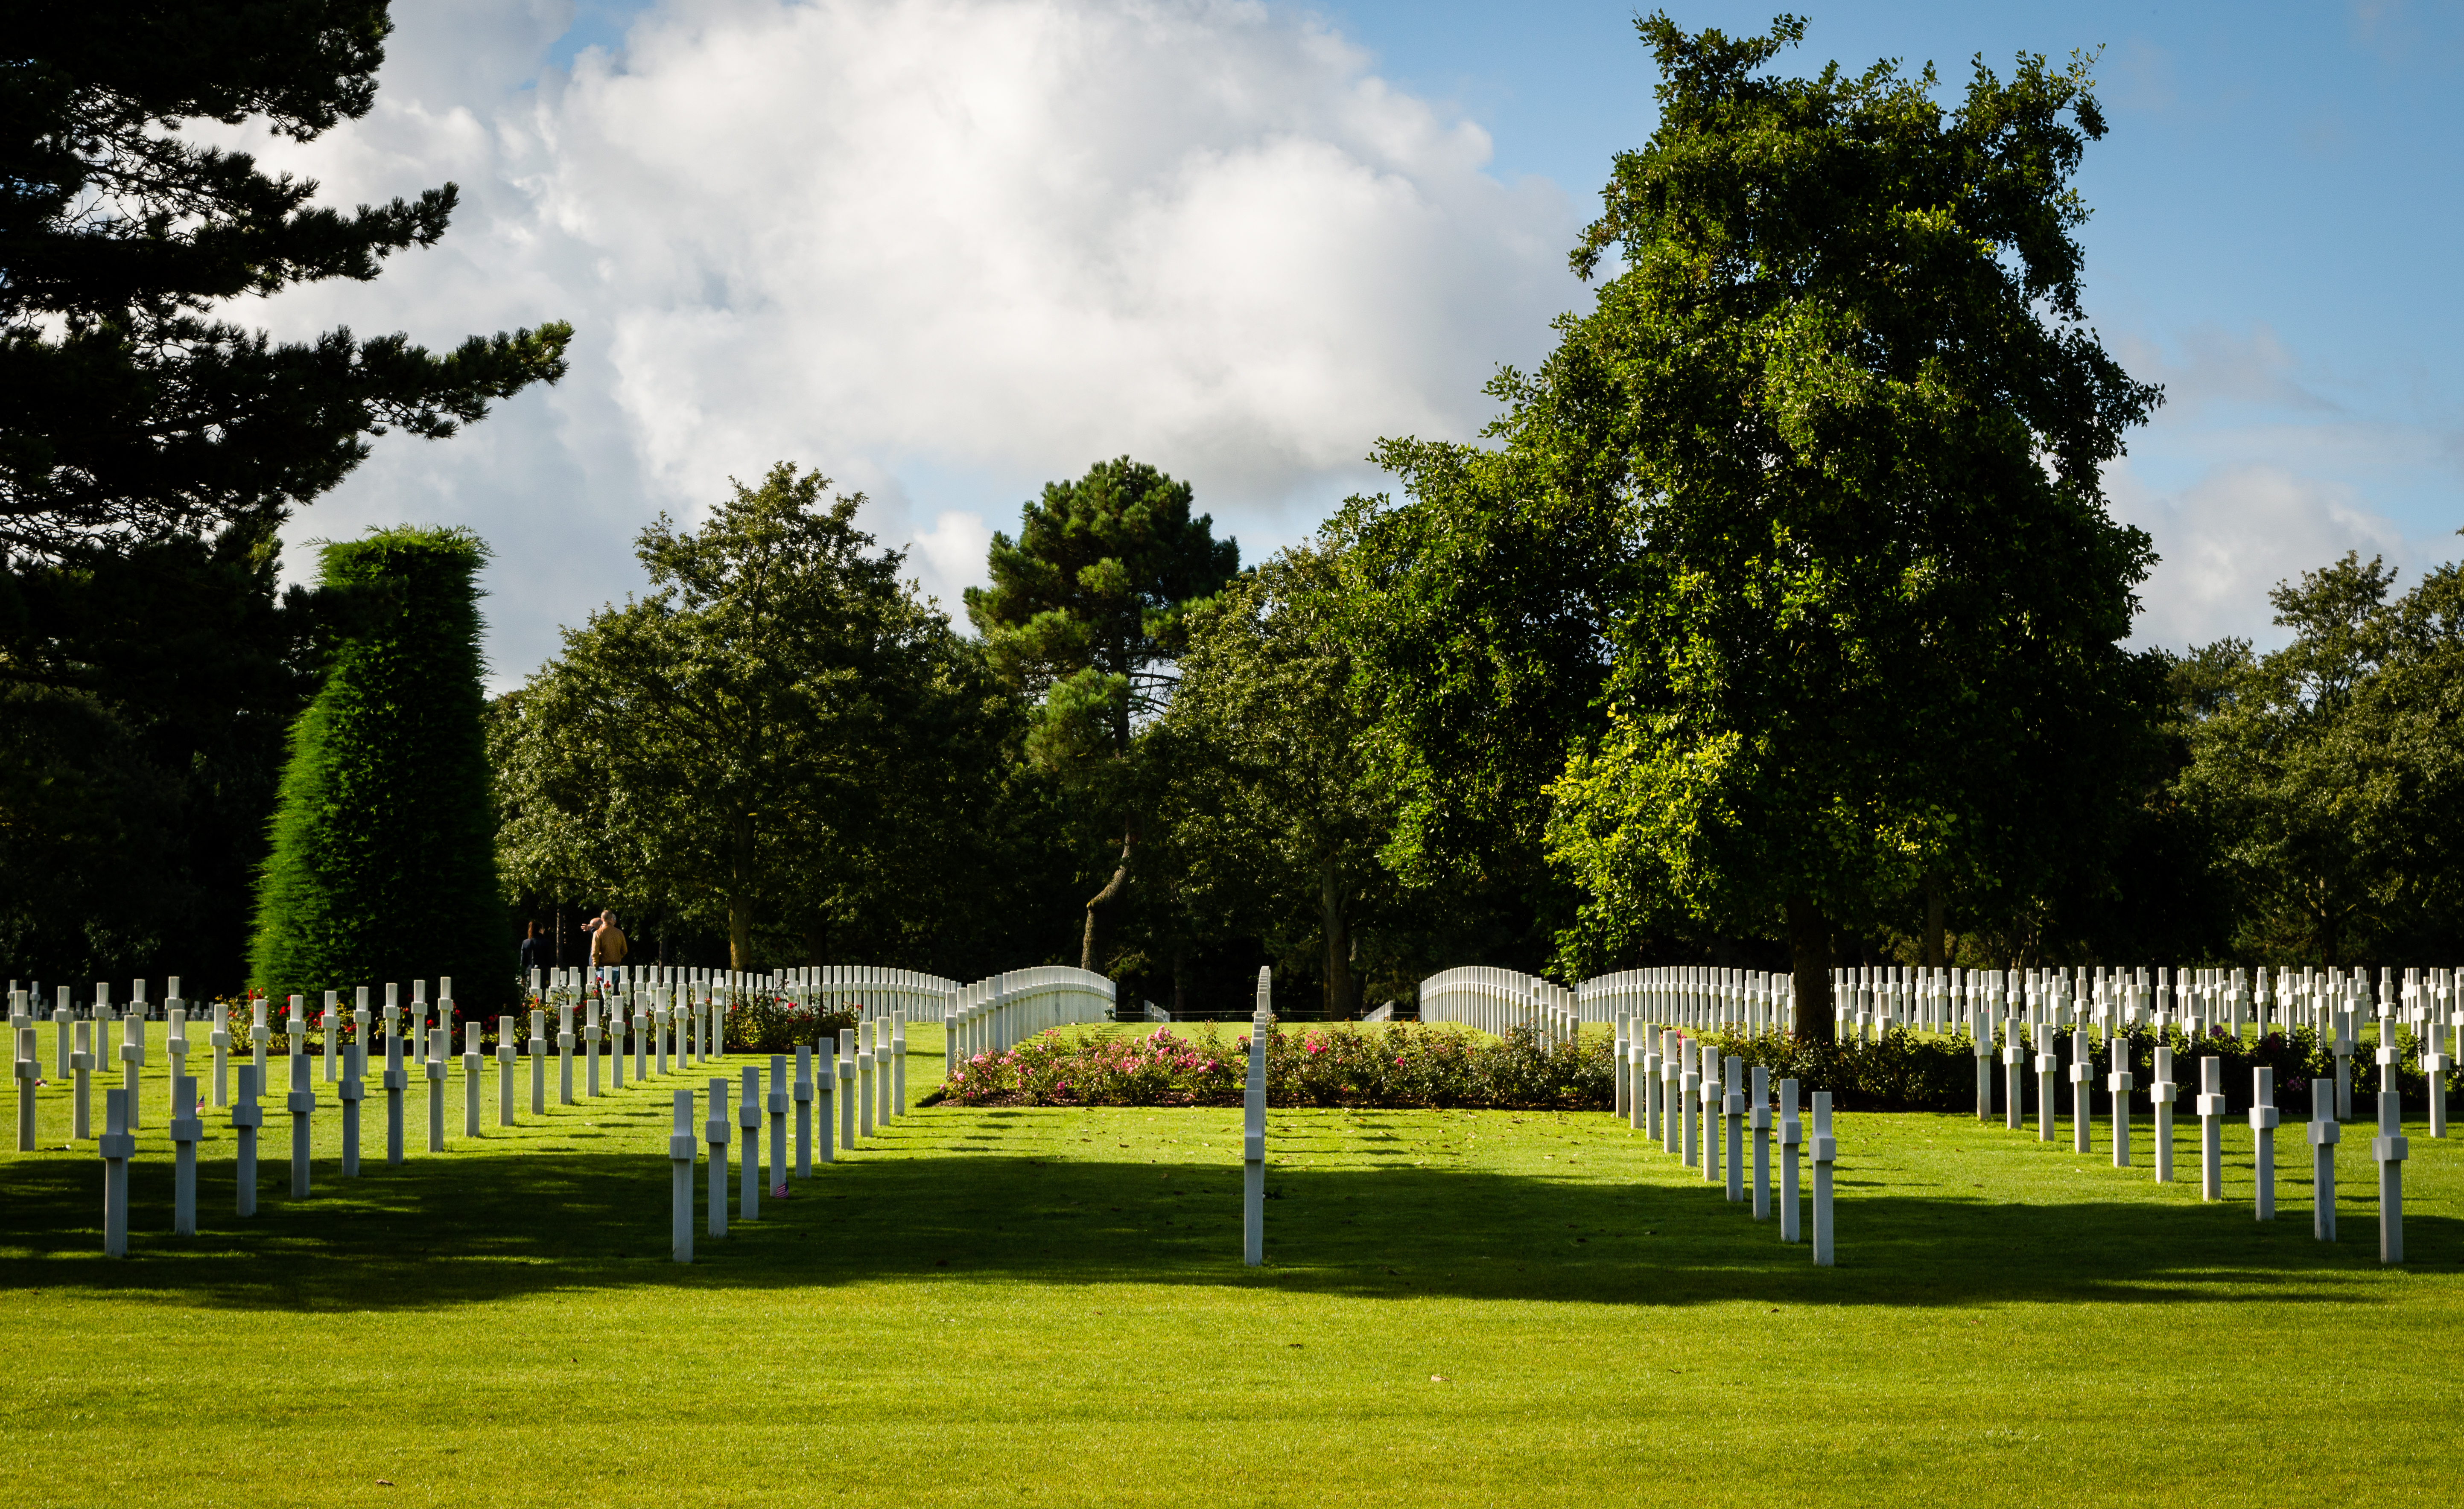 White crosses in American War Cemetery near Omaha Beach, Normandy (Colleville-sur-Mer), France